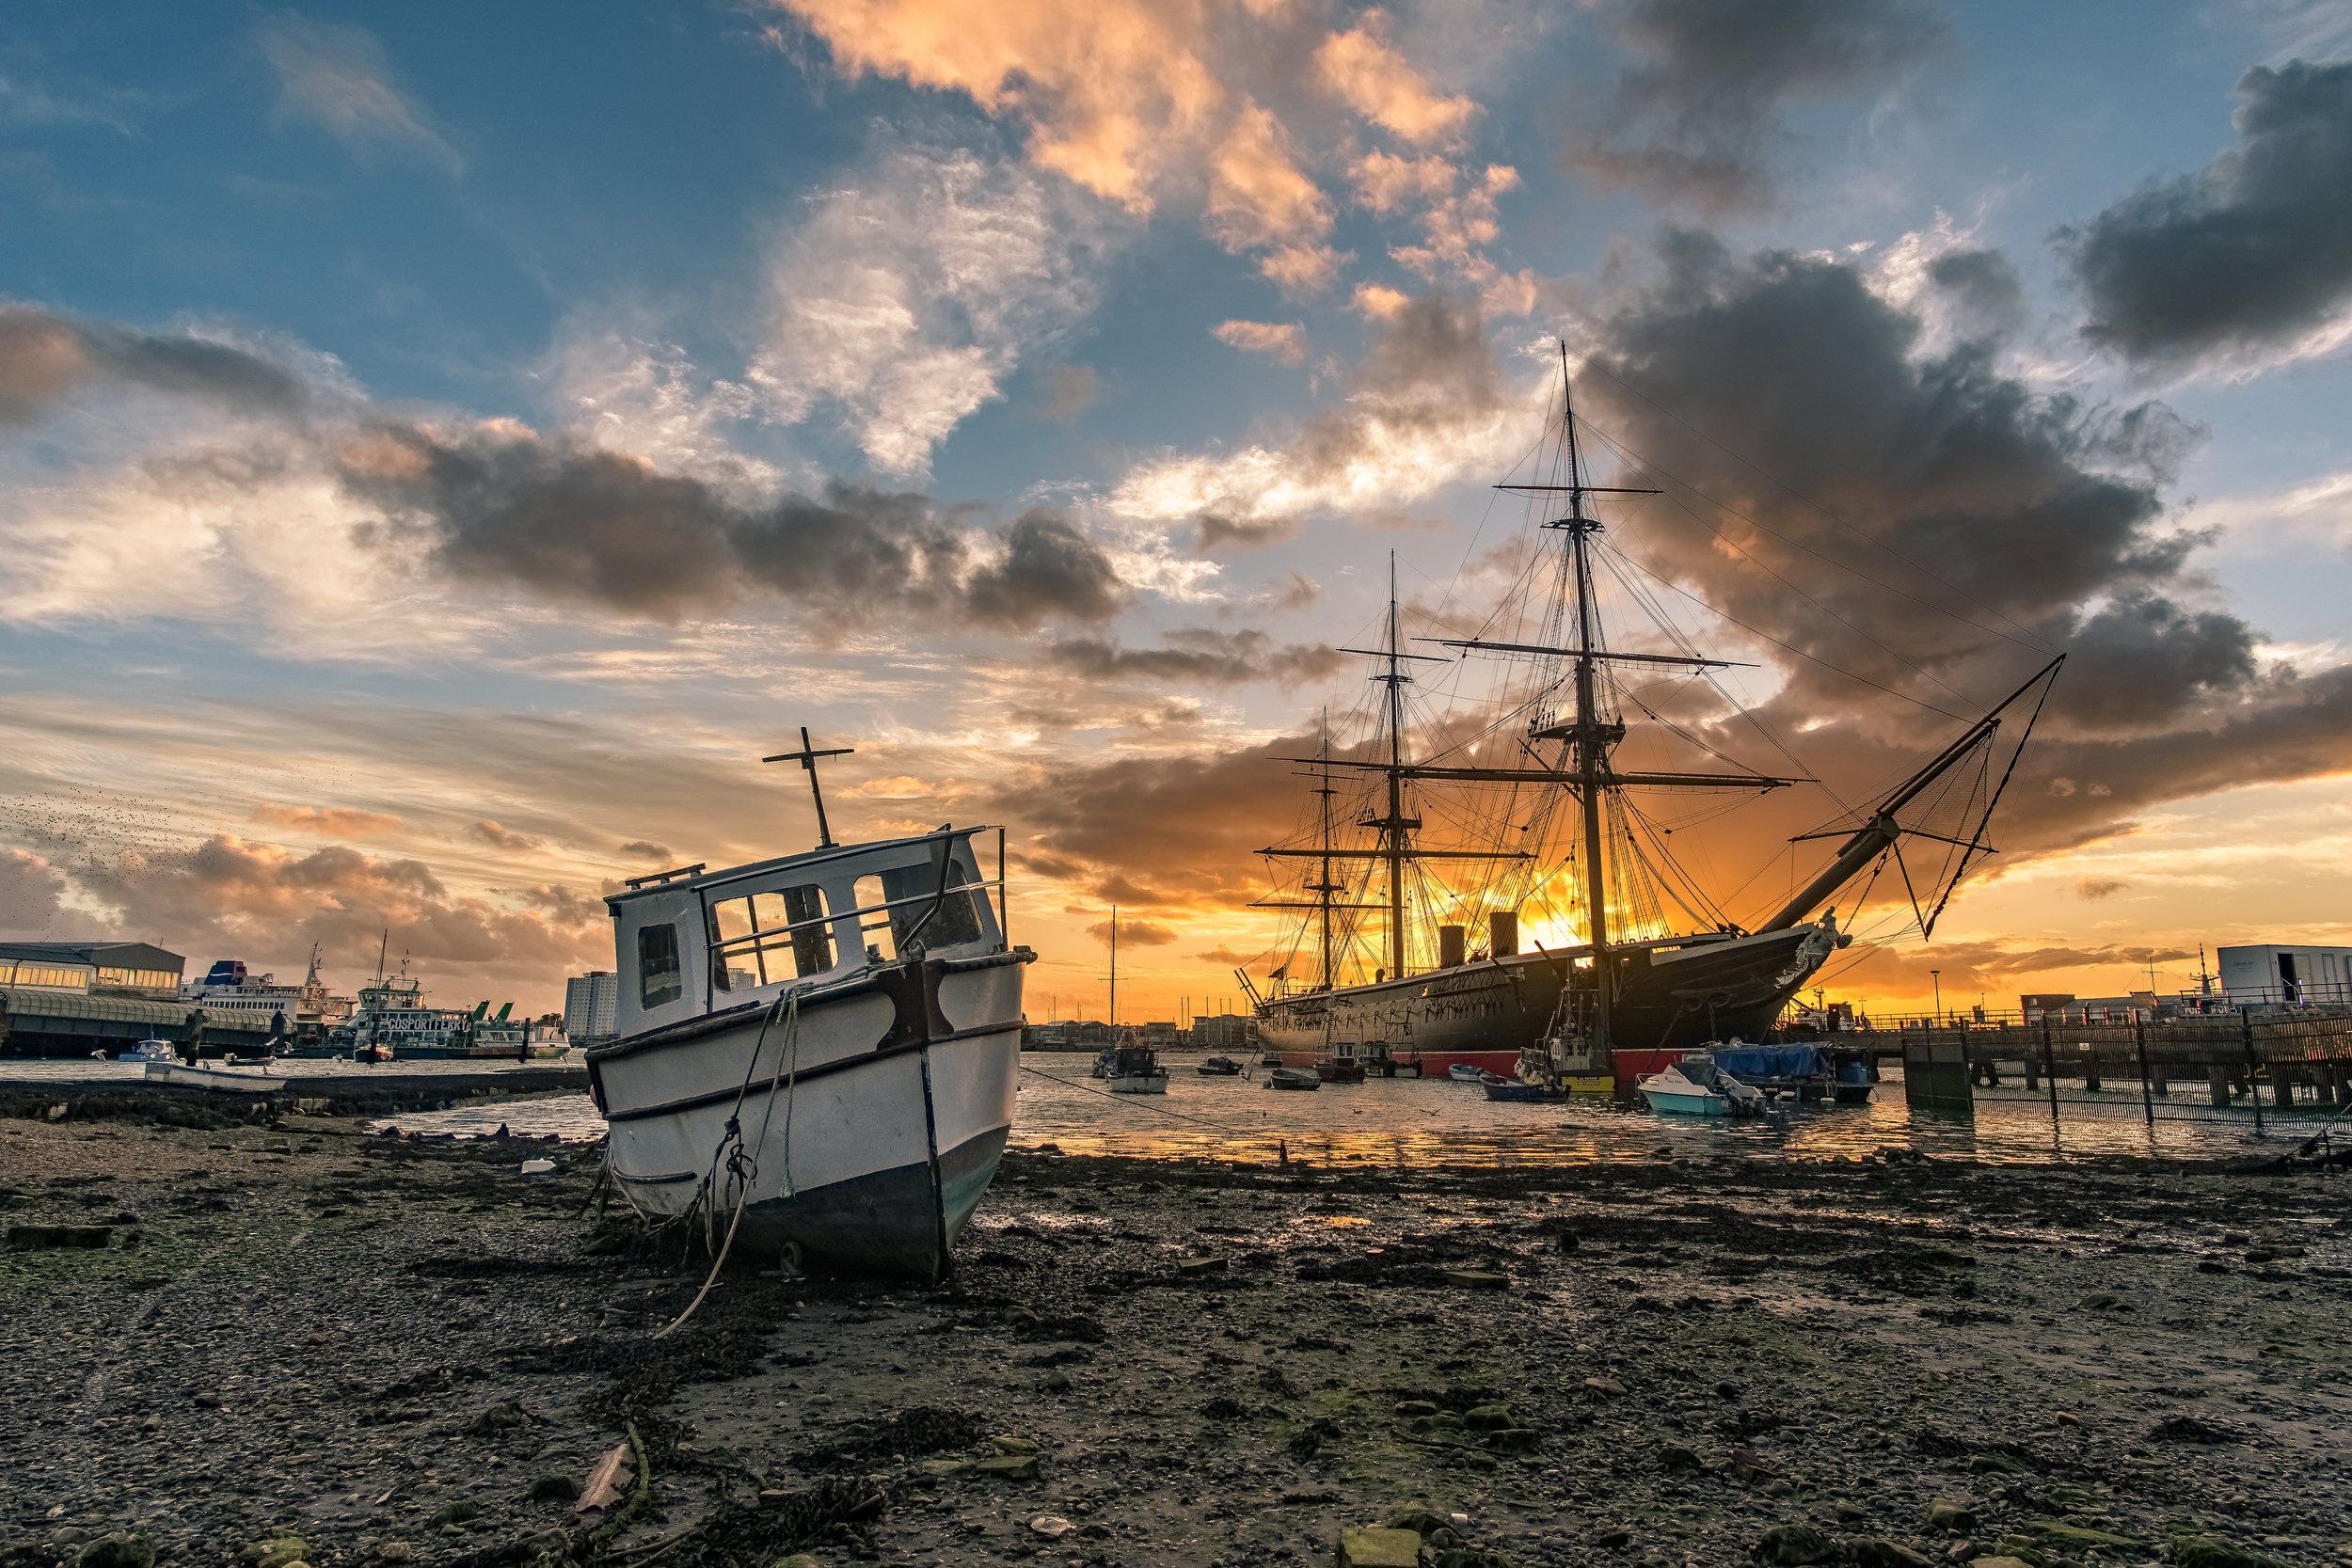 HMS Warrior at Sunset - Portsmouth